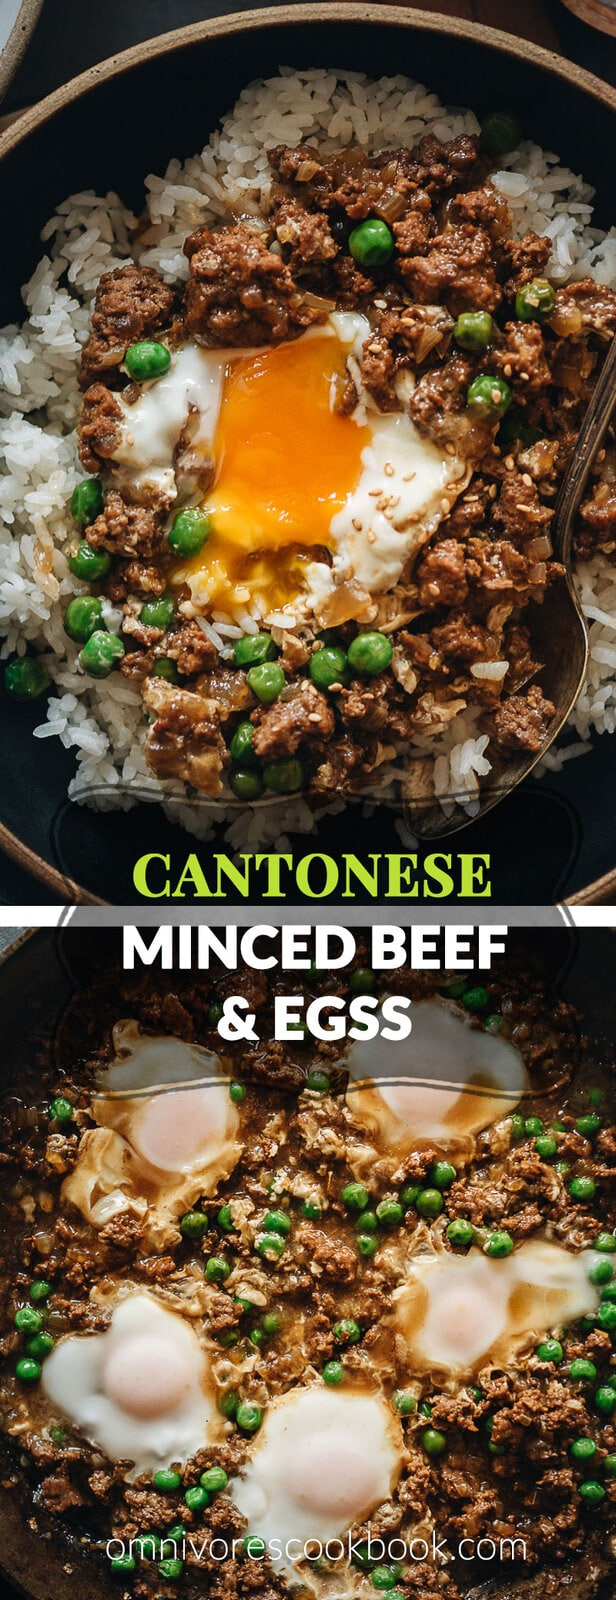 cantonese ground beef rice and eggs 窝蛋牛肉  omnivore's